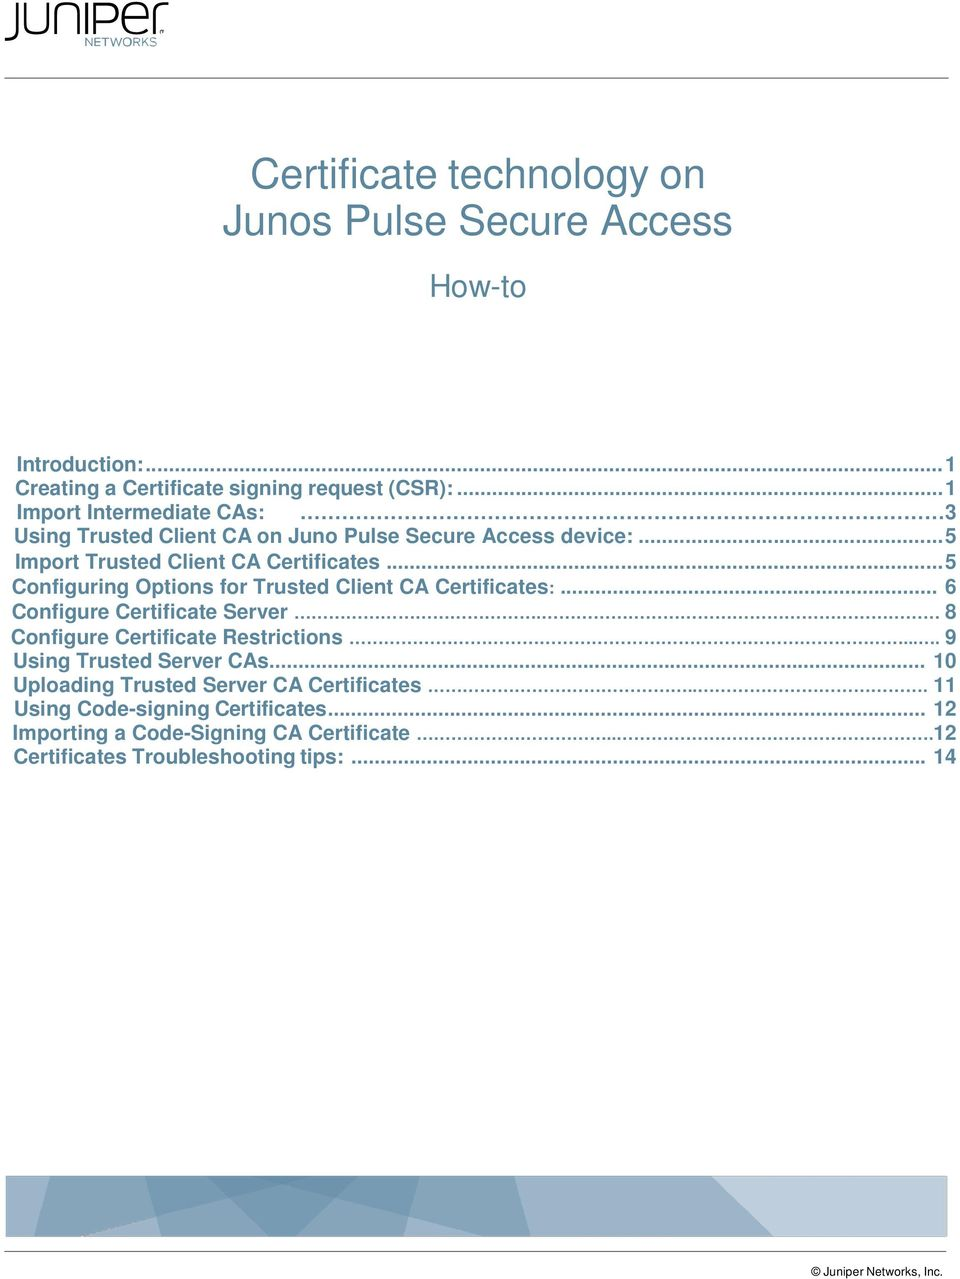 Certificate technology on Junos Pulse Secure Access - PDF